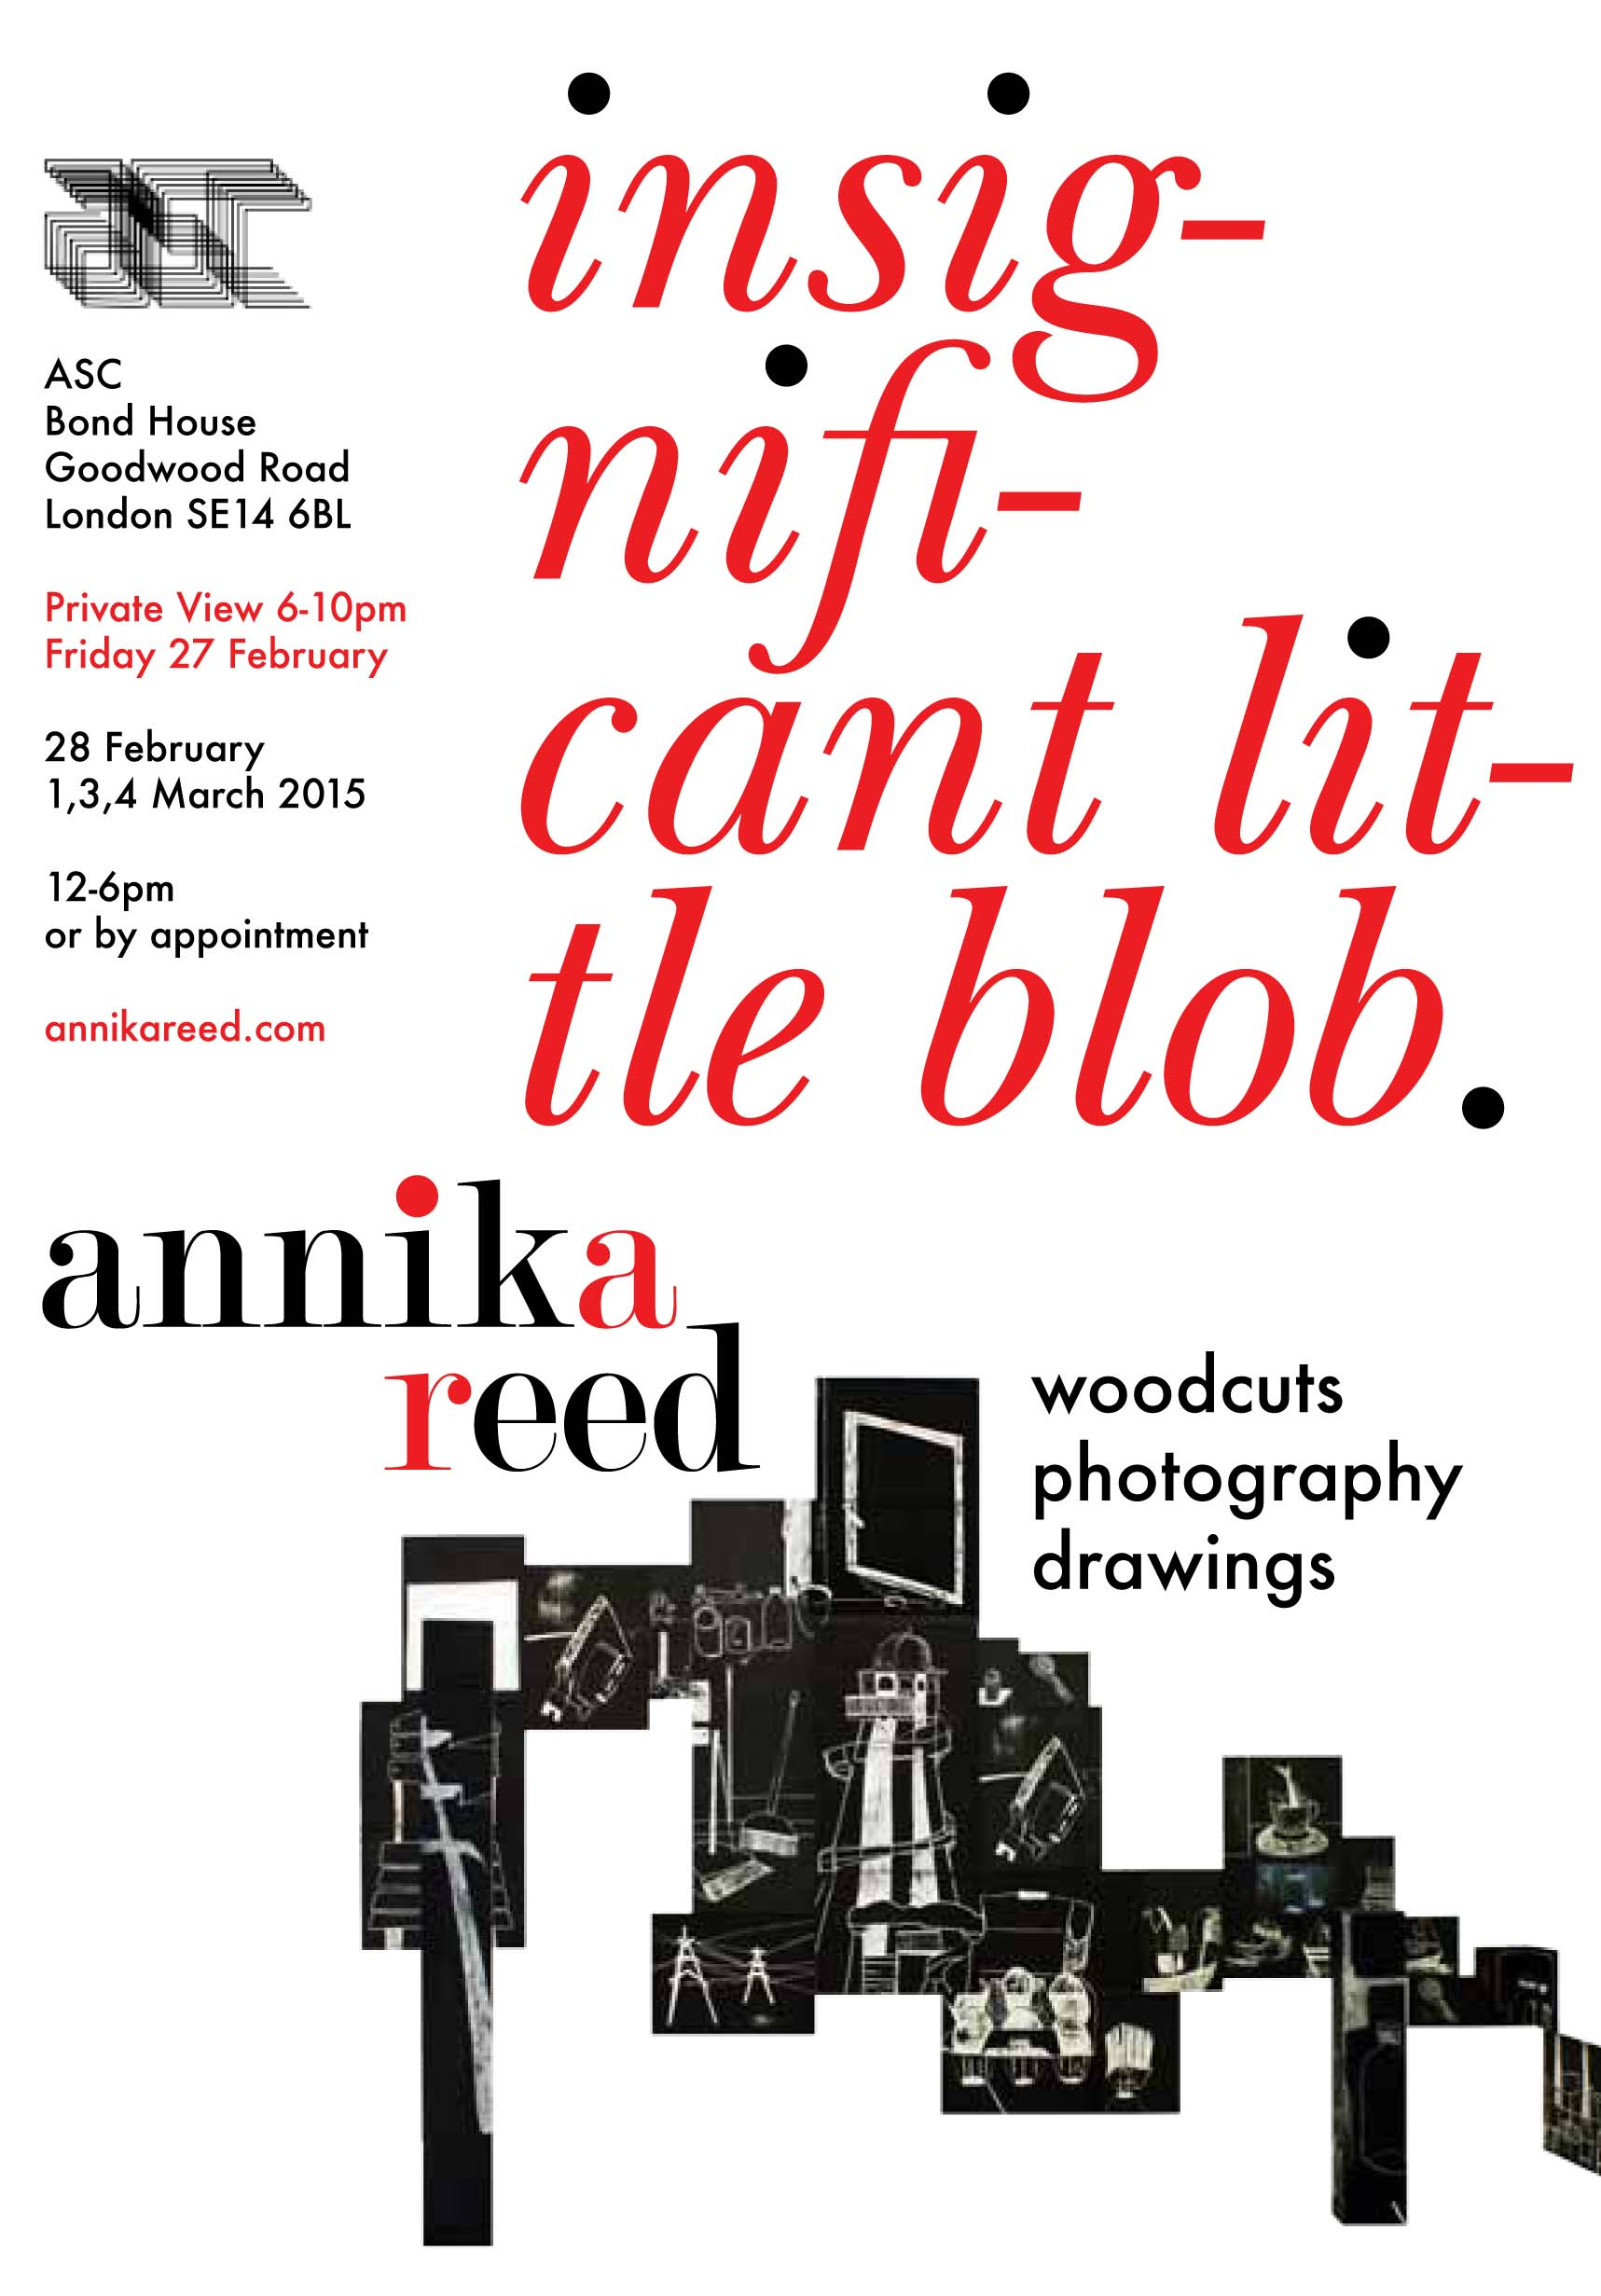 Bond House Projects | Annika Reed | Insignificant Little Blob - ASC